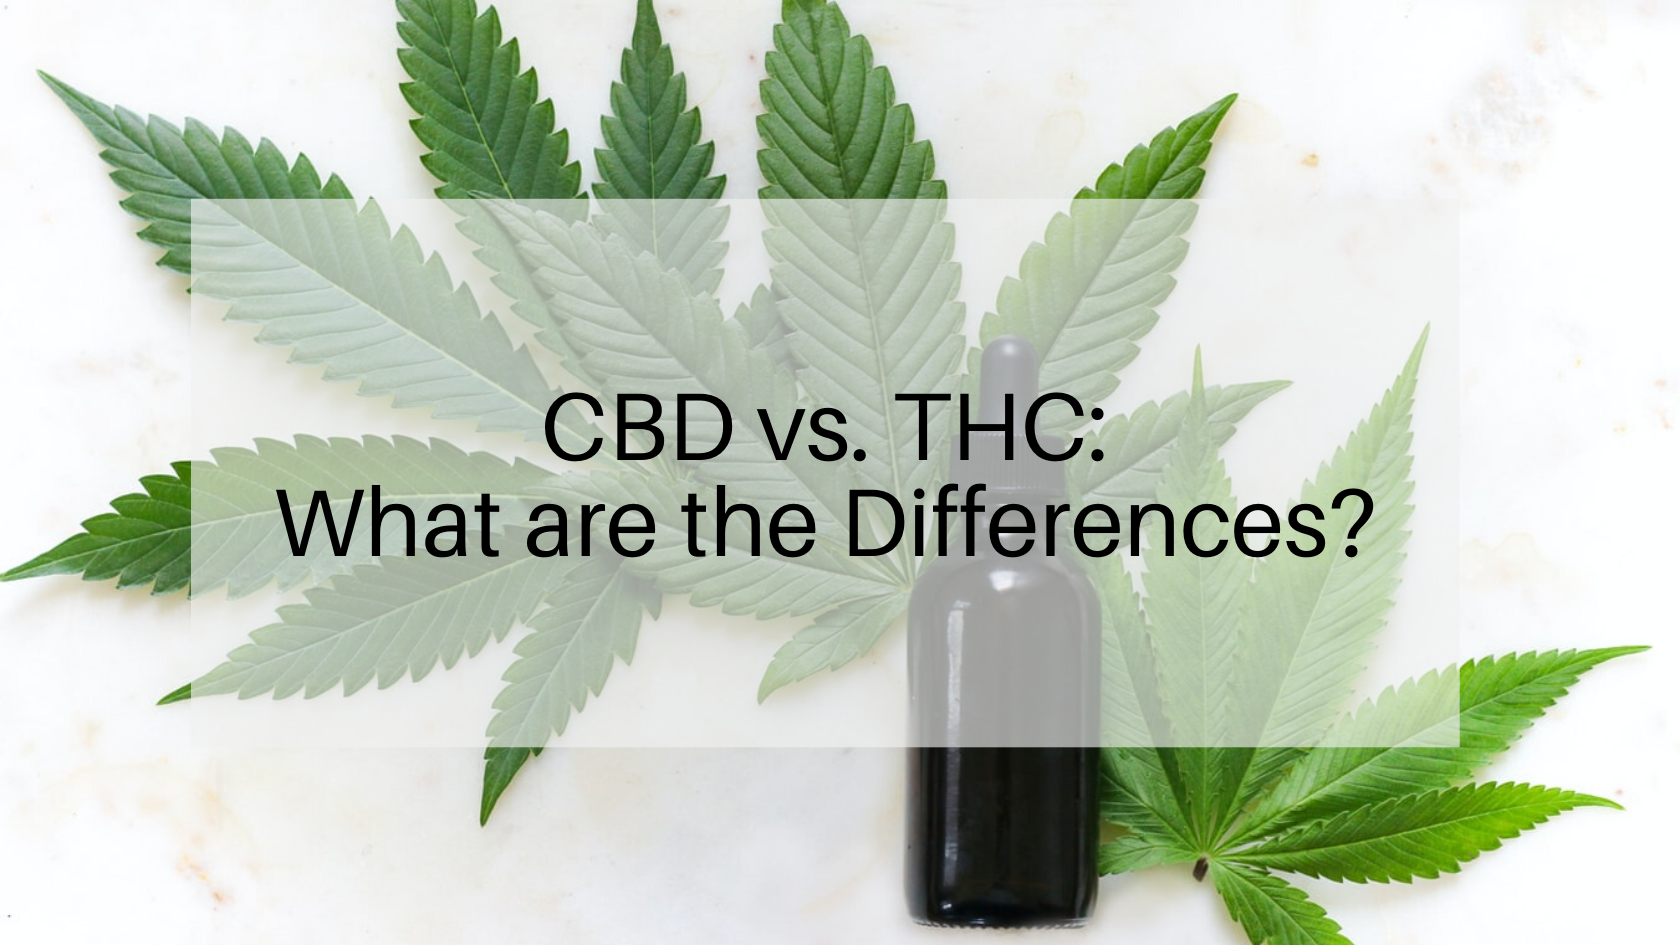 CBD vs. THC: What are the Differences?